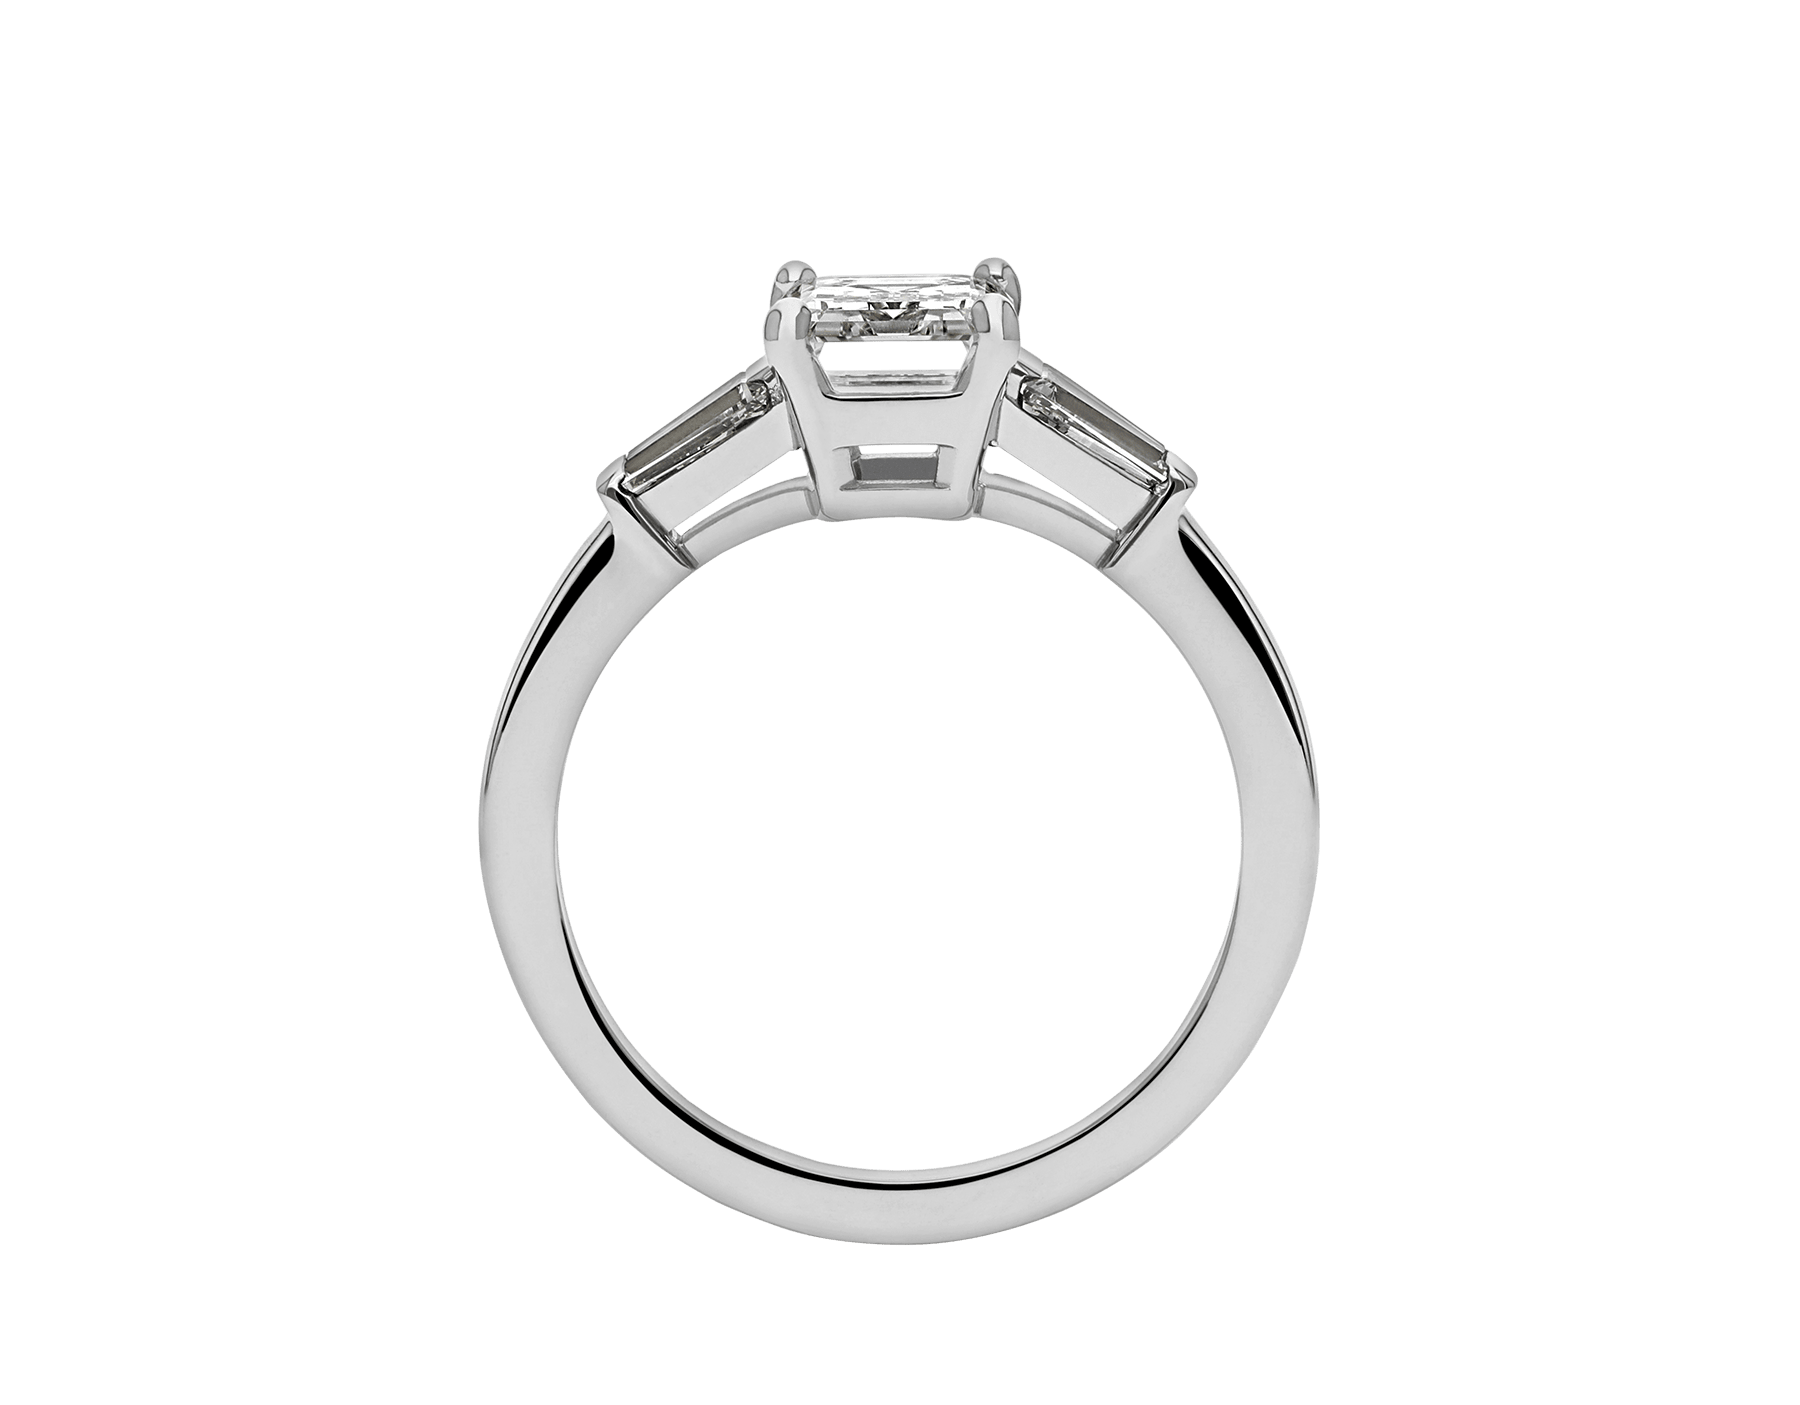 Griffe solitaire ring in platinum with one emerald cut diamond and two side diamonds 331649 image 4